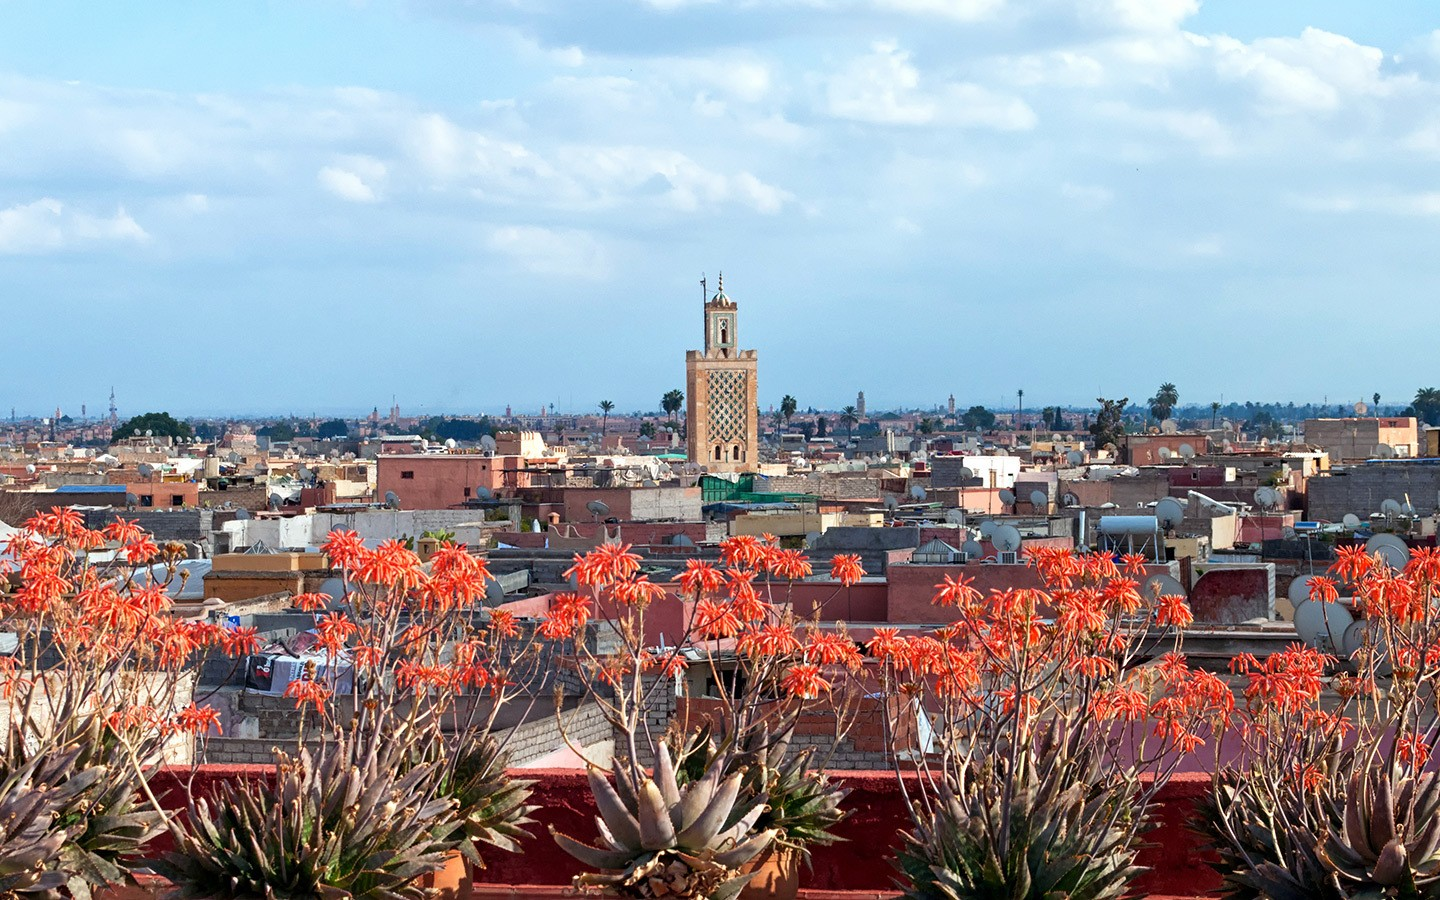 Views over the rooftops of the medina in Marrakech, Morocco